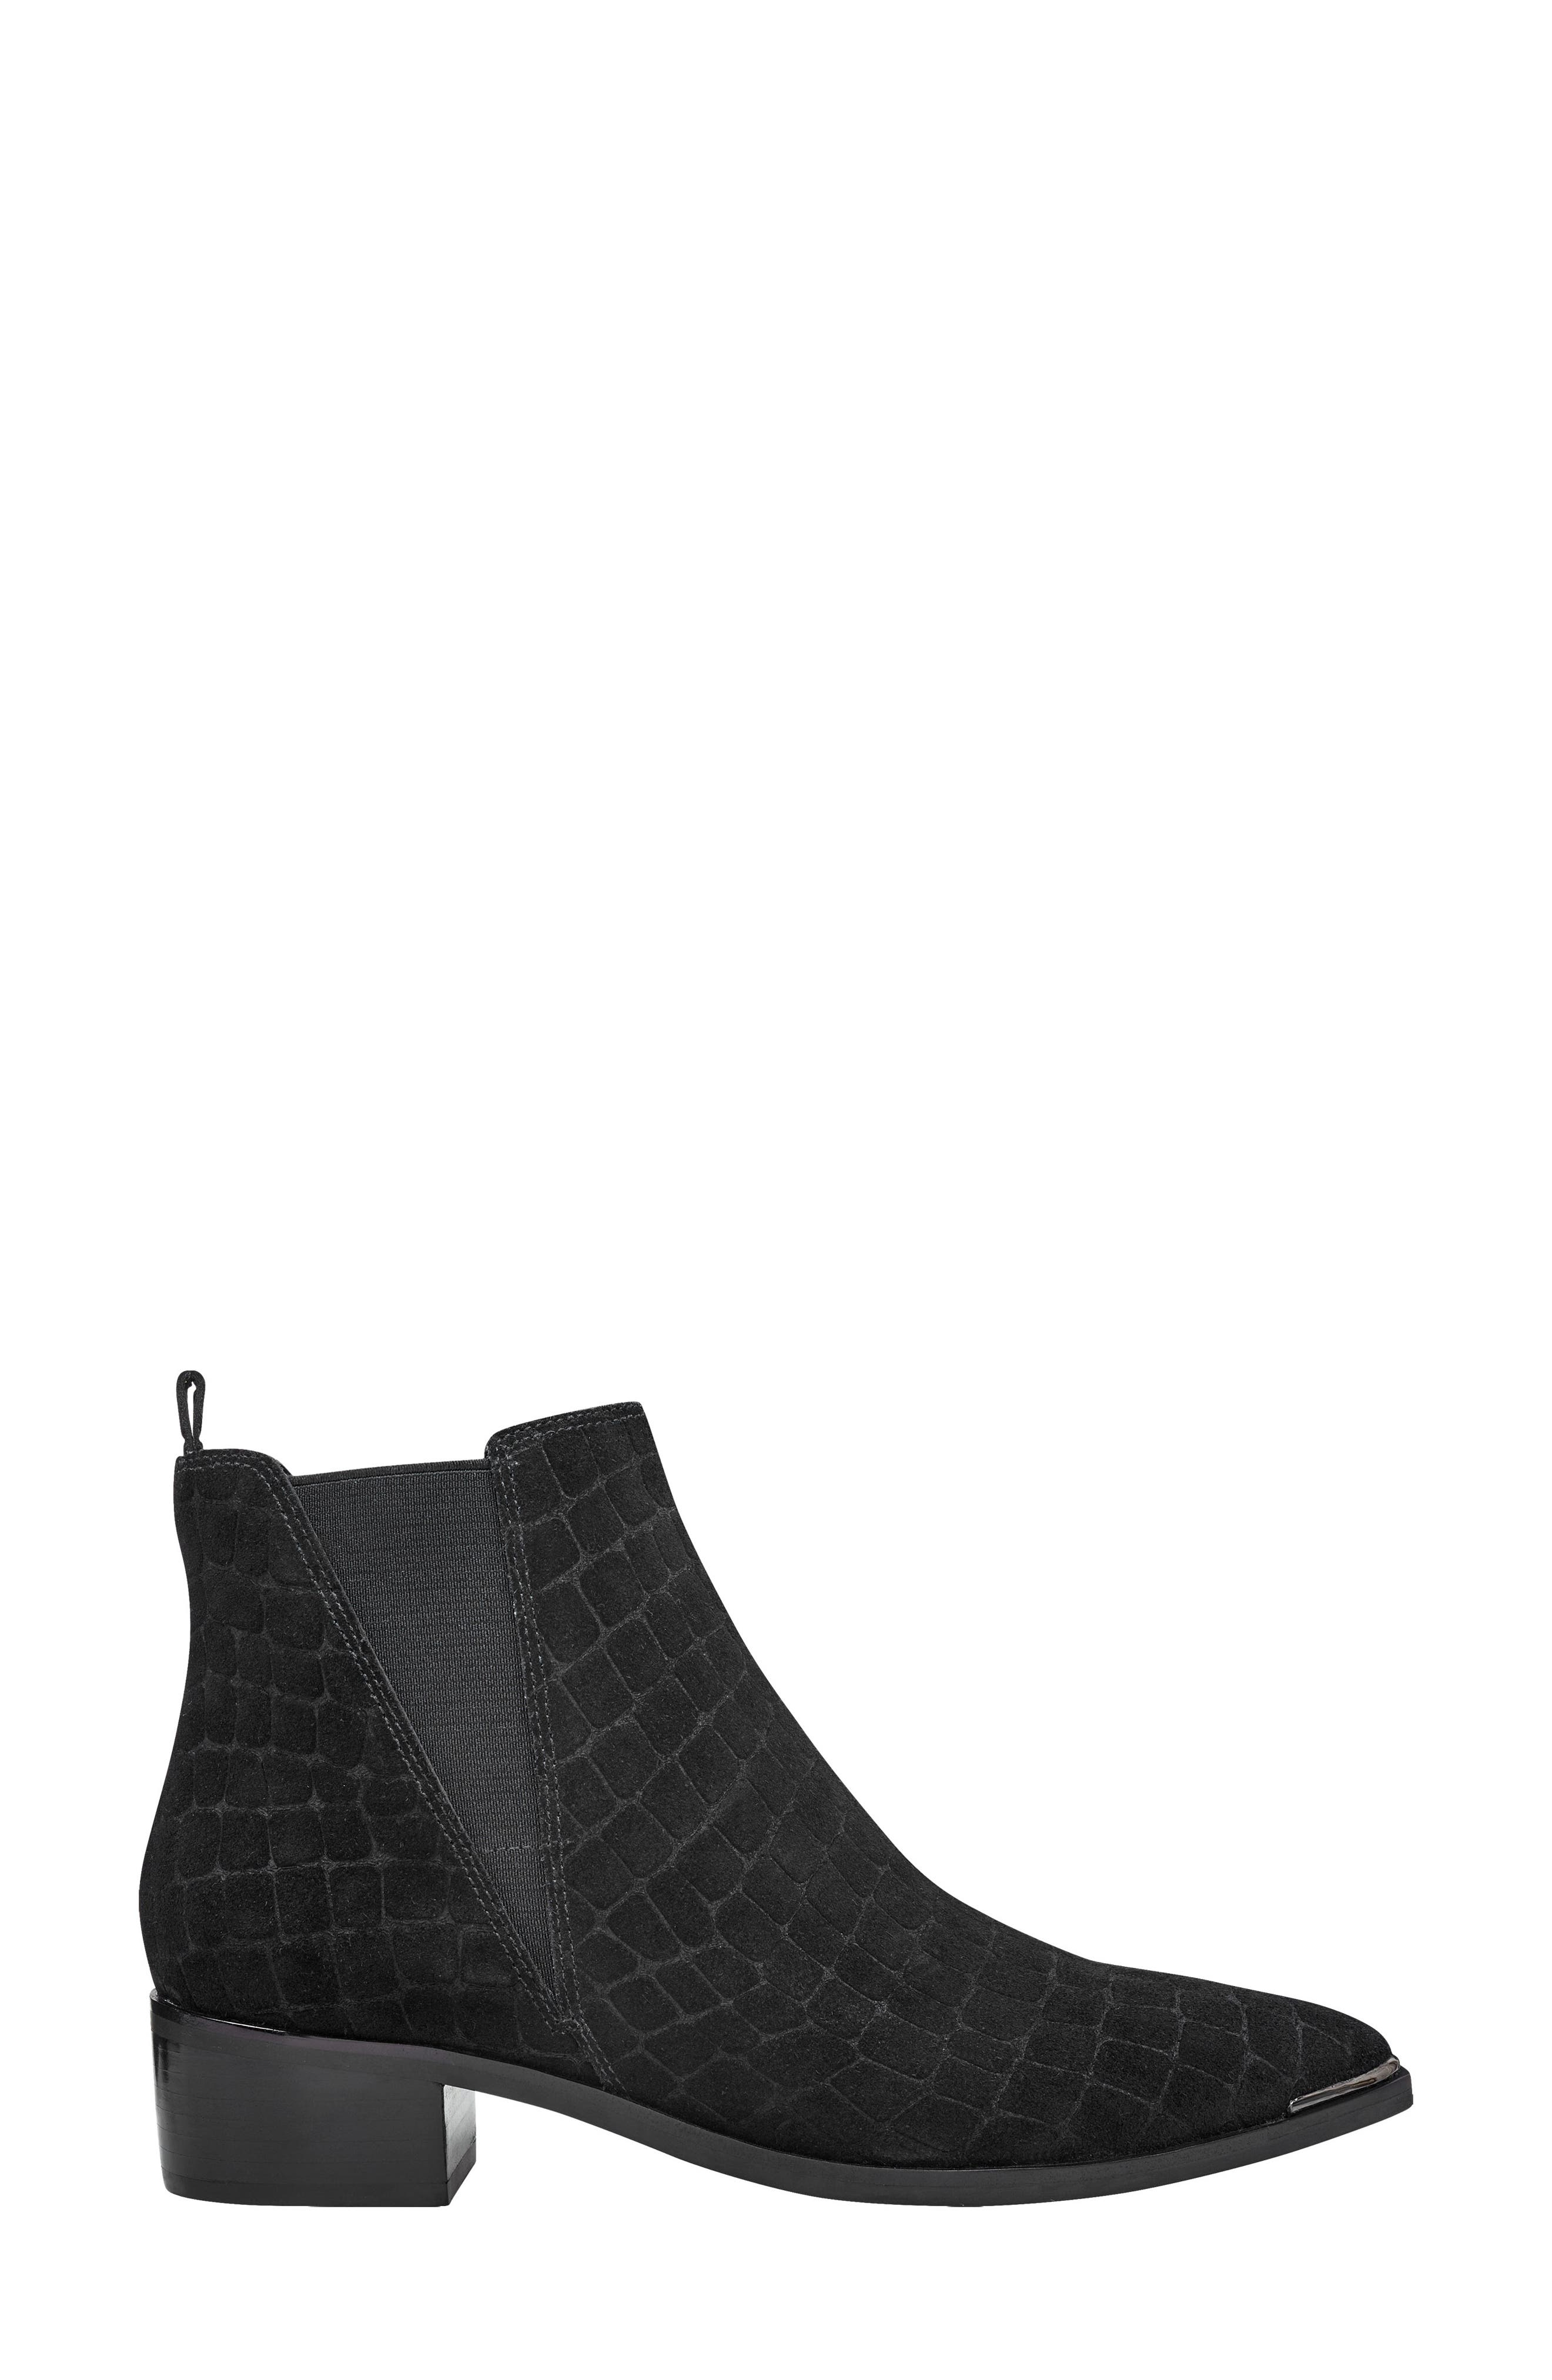 'Yale' Chelsea Boot,                             Alternate thumbnail 3, color,                             BLACK CROC EMBOSSED SUEDE